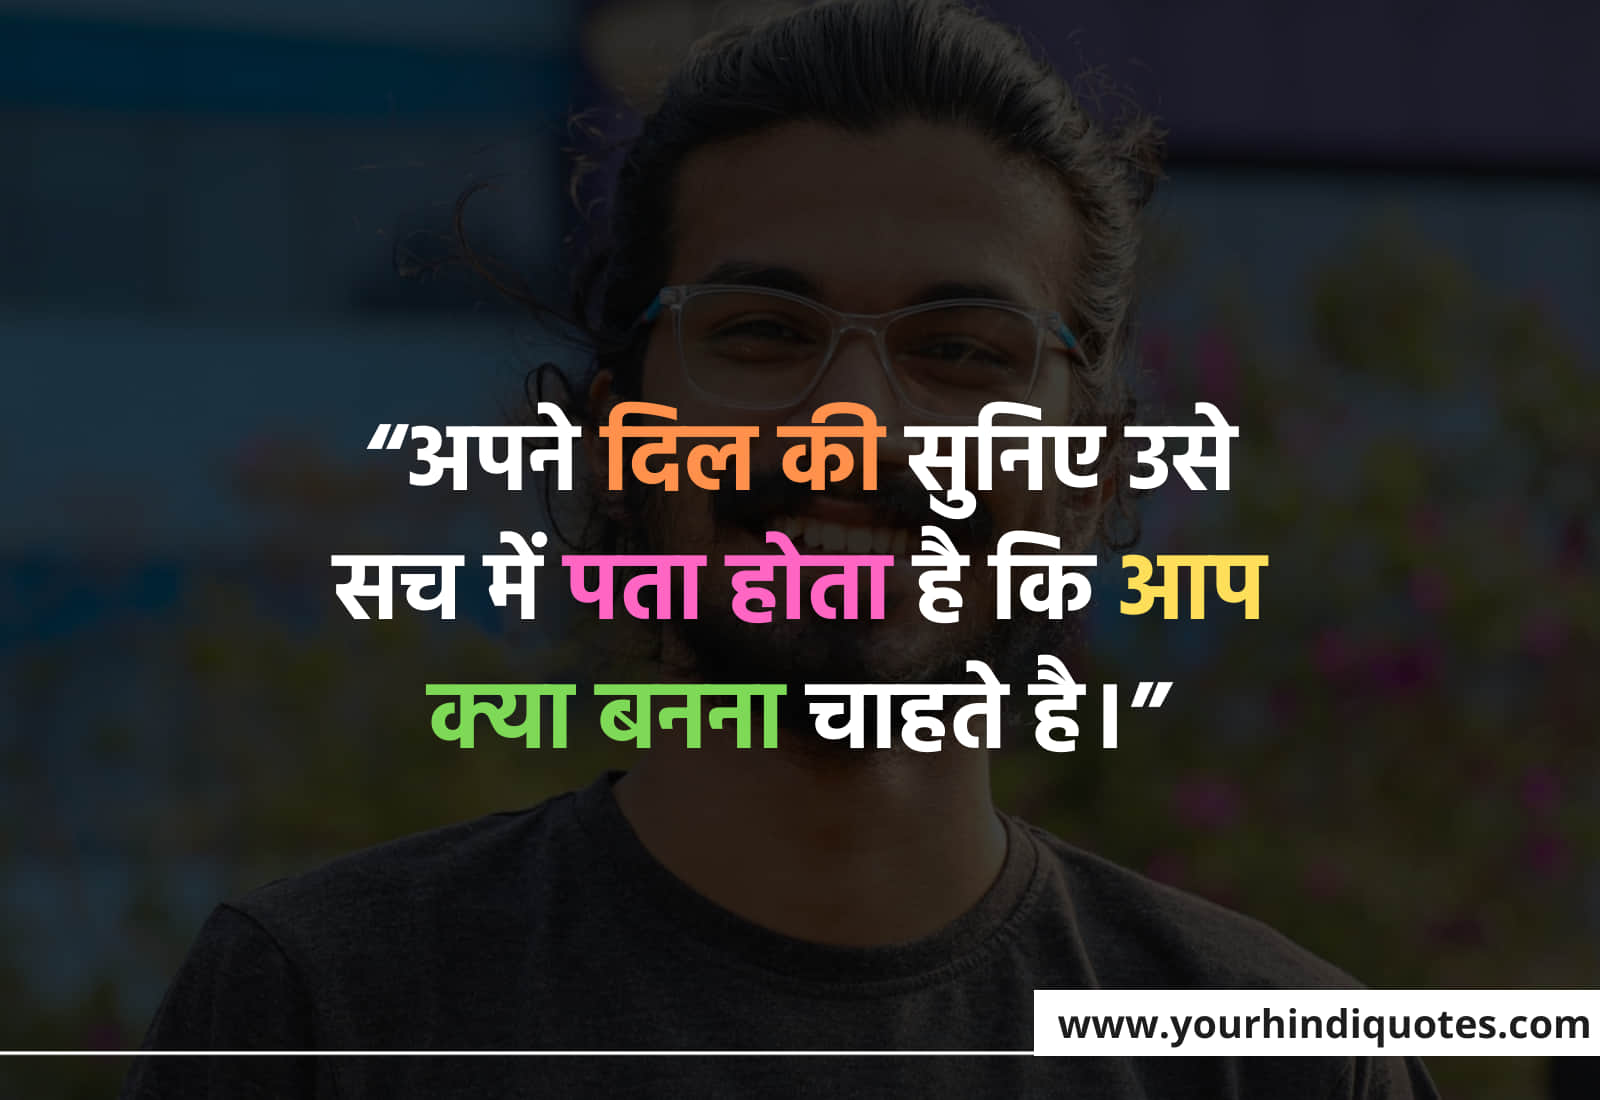 Hindi Students Quotes For Success